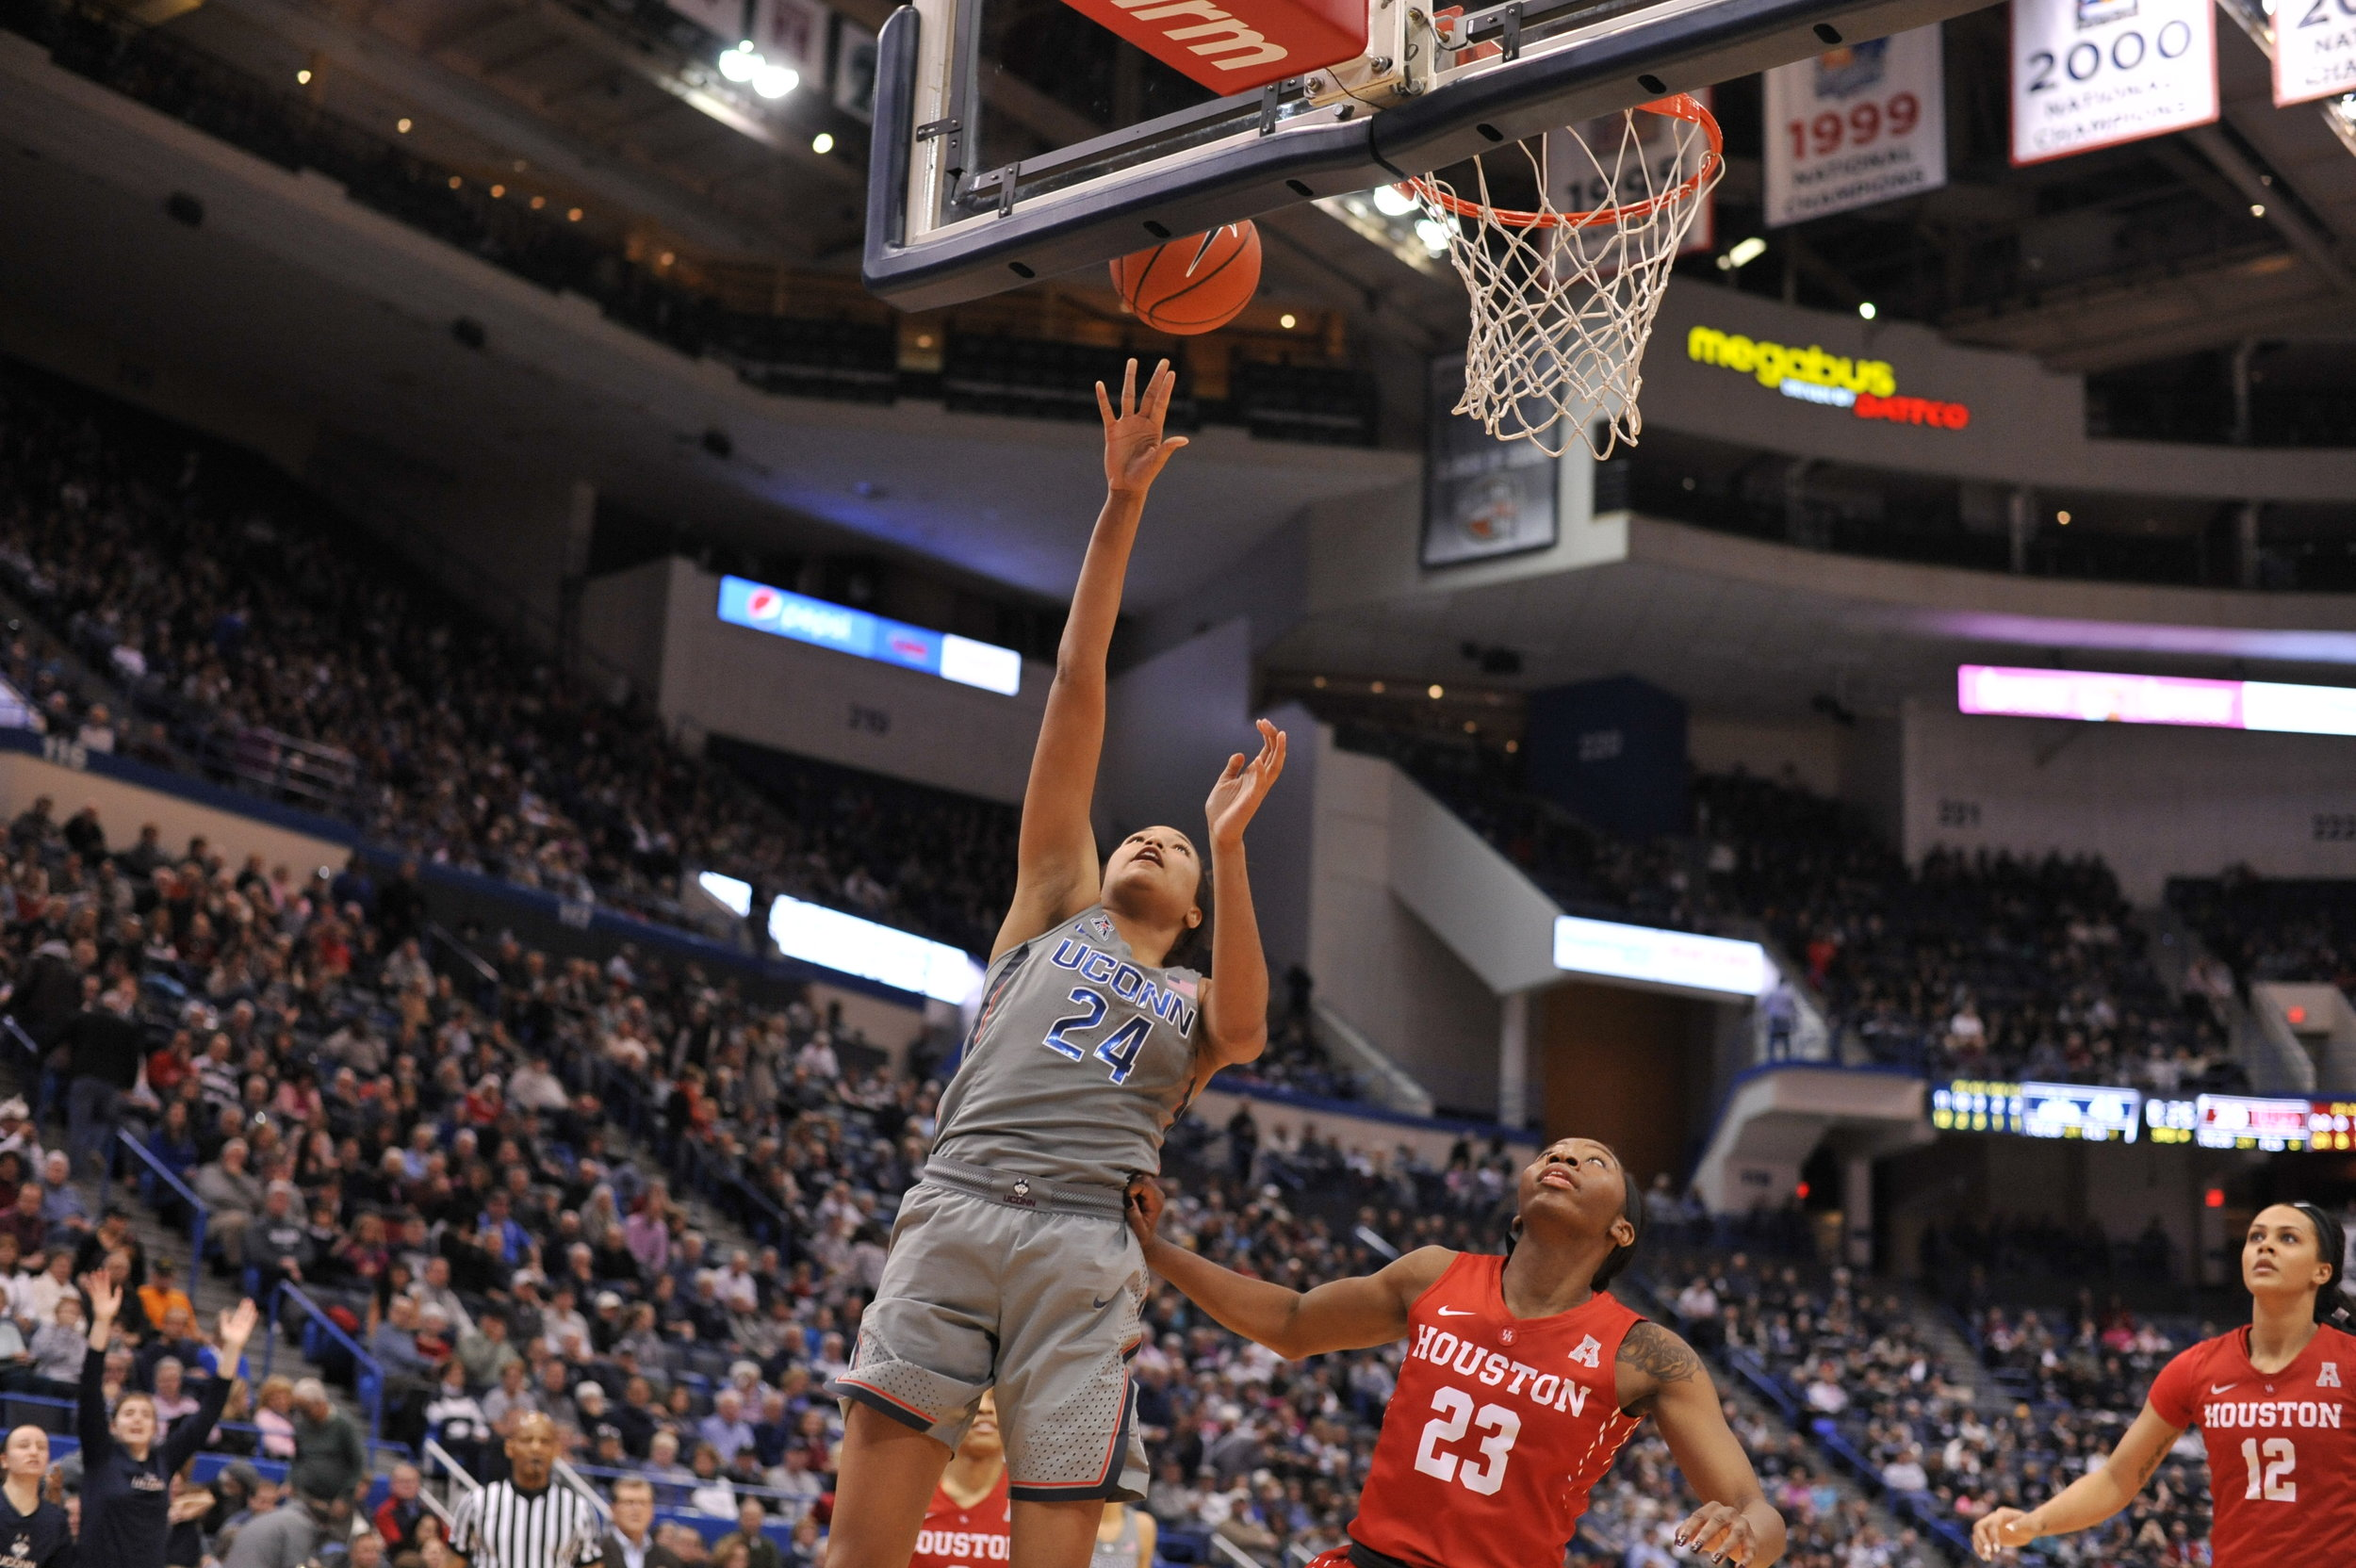 Sophomore Napheesa Collier, who scored 12 points for the Huskies, takes a layup. (Jason Jiang/The Daily Campus)